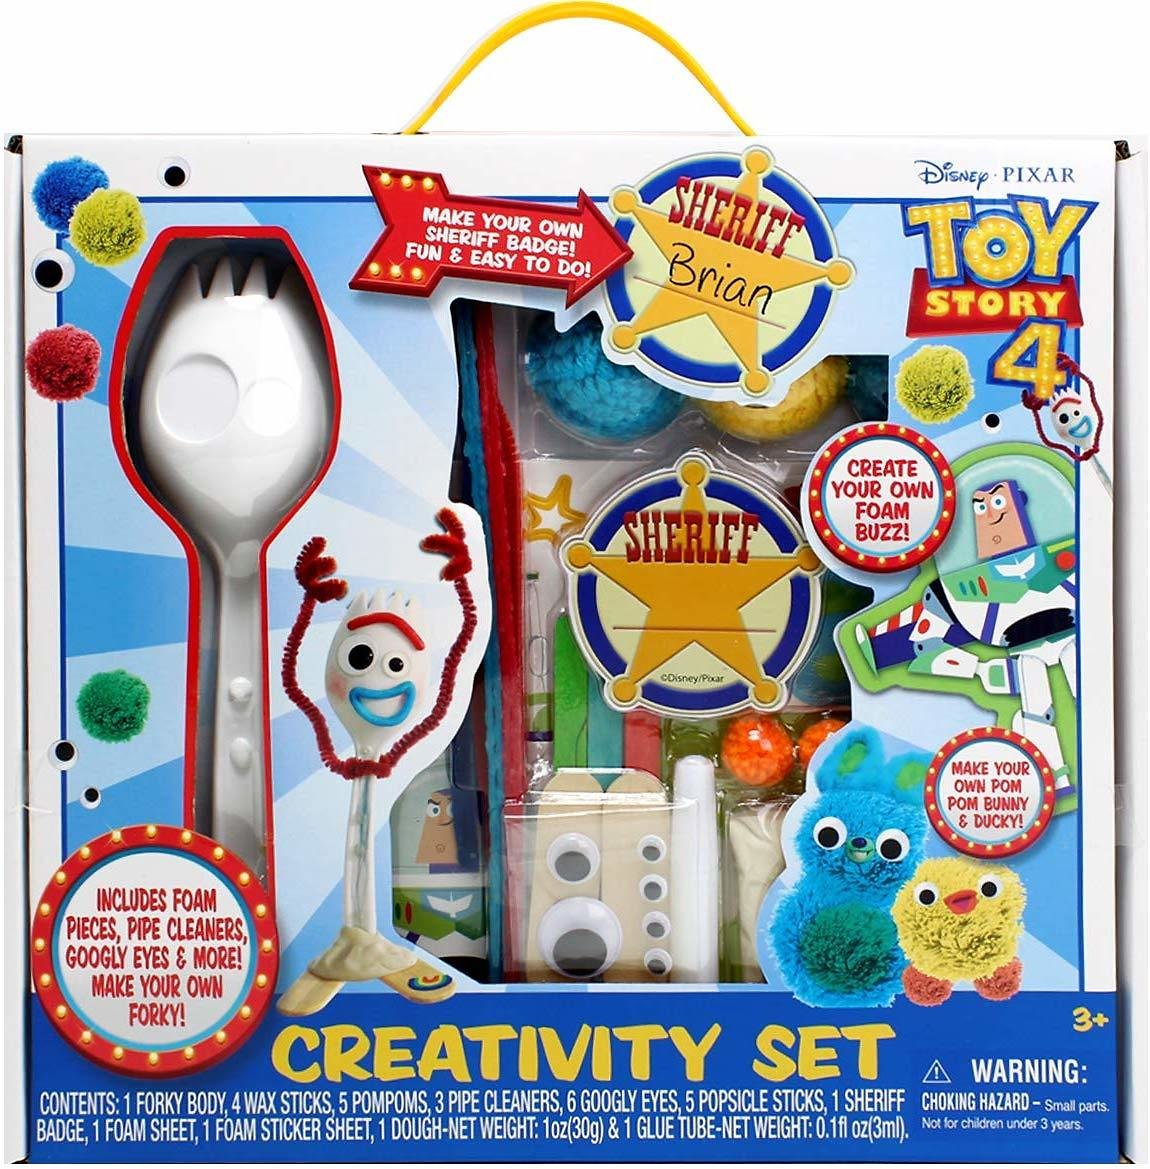 Toy Story 4 Craft Creativity Art Set: Make Your Own Forky and Other Characters